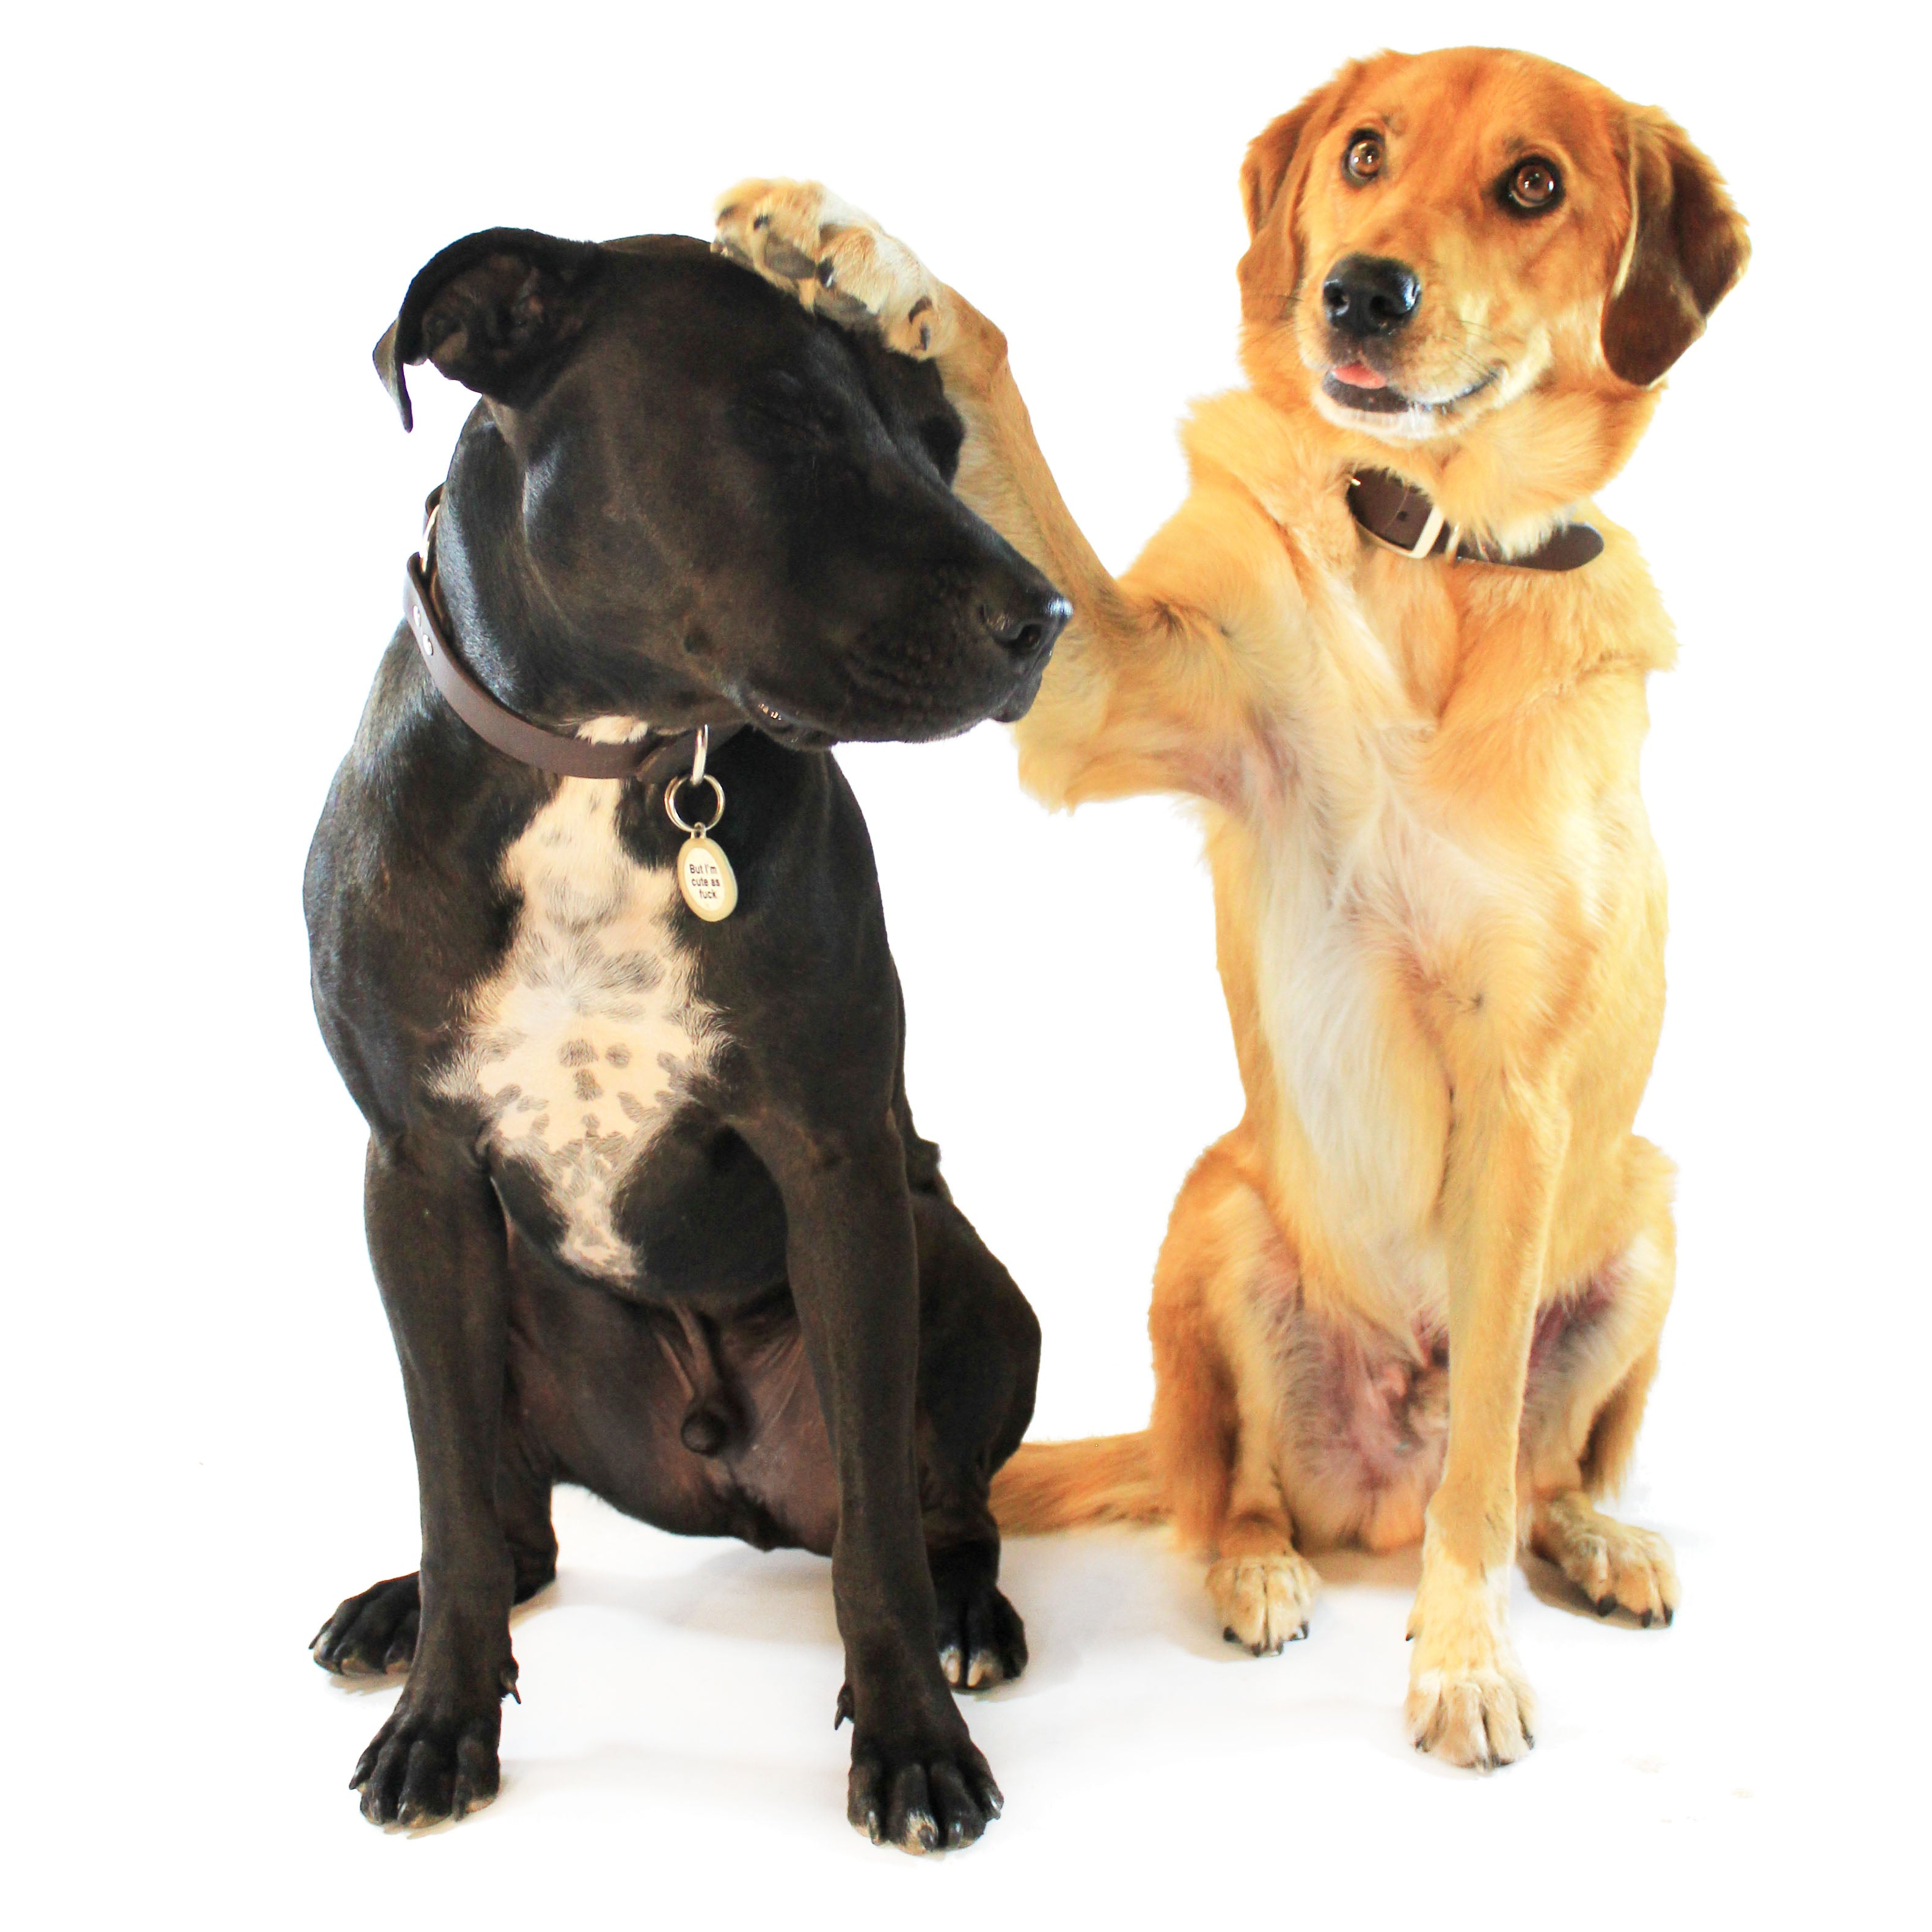 two dogs - how to get dogs to stop barking?